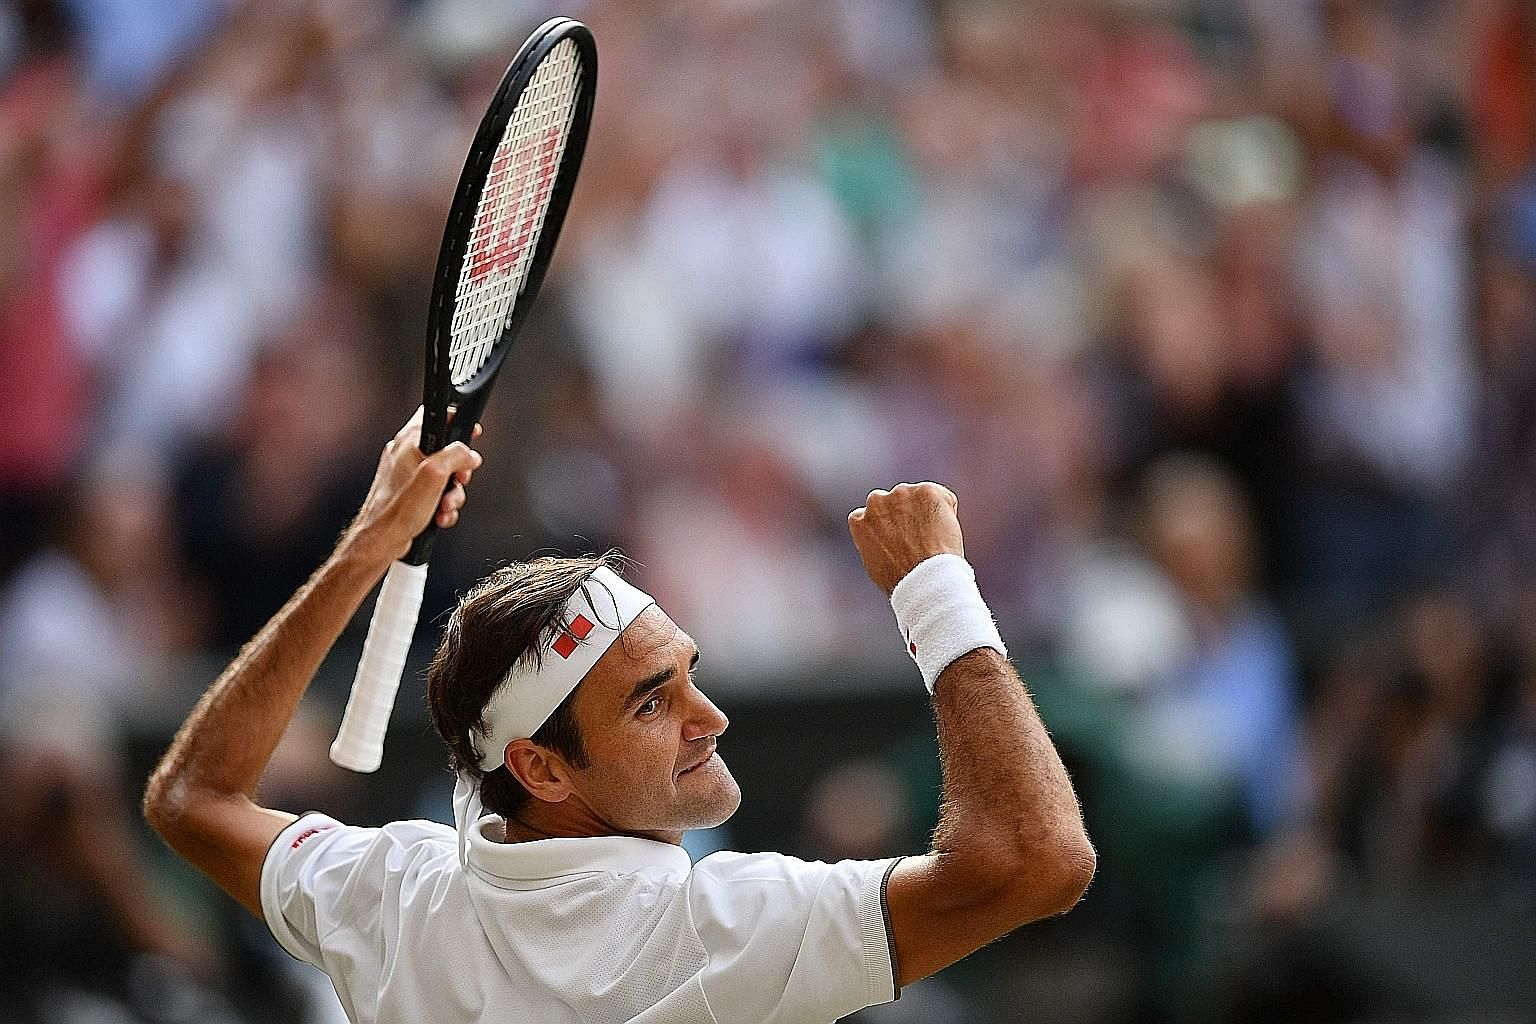 Roger Federer will be hoping for back-to-back wins over both Rafael Nadal and Novak Djokovic at Wimbledon. He downed Nadal in four sets in the semi-finals and will meet Djokovic in the final.